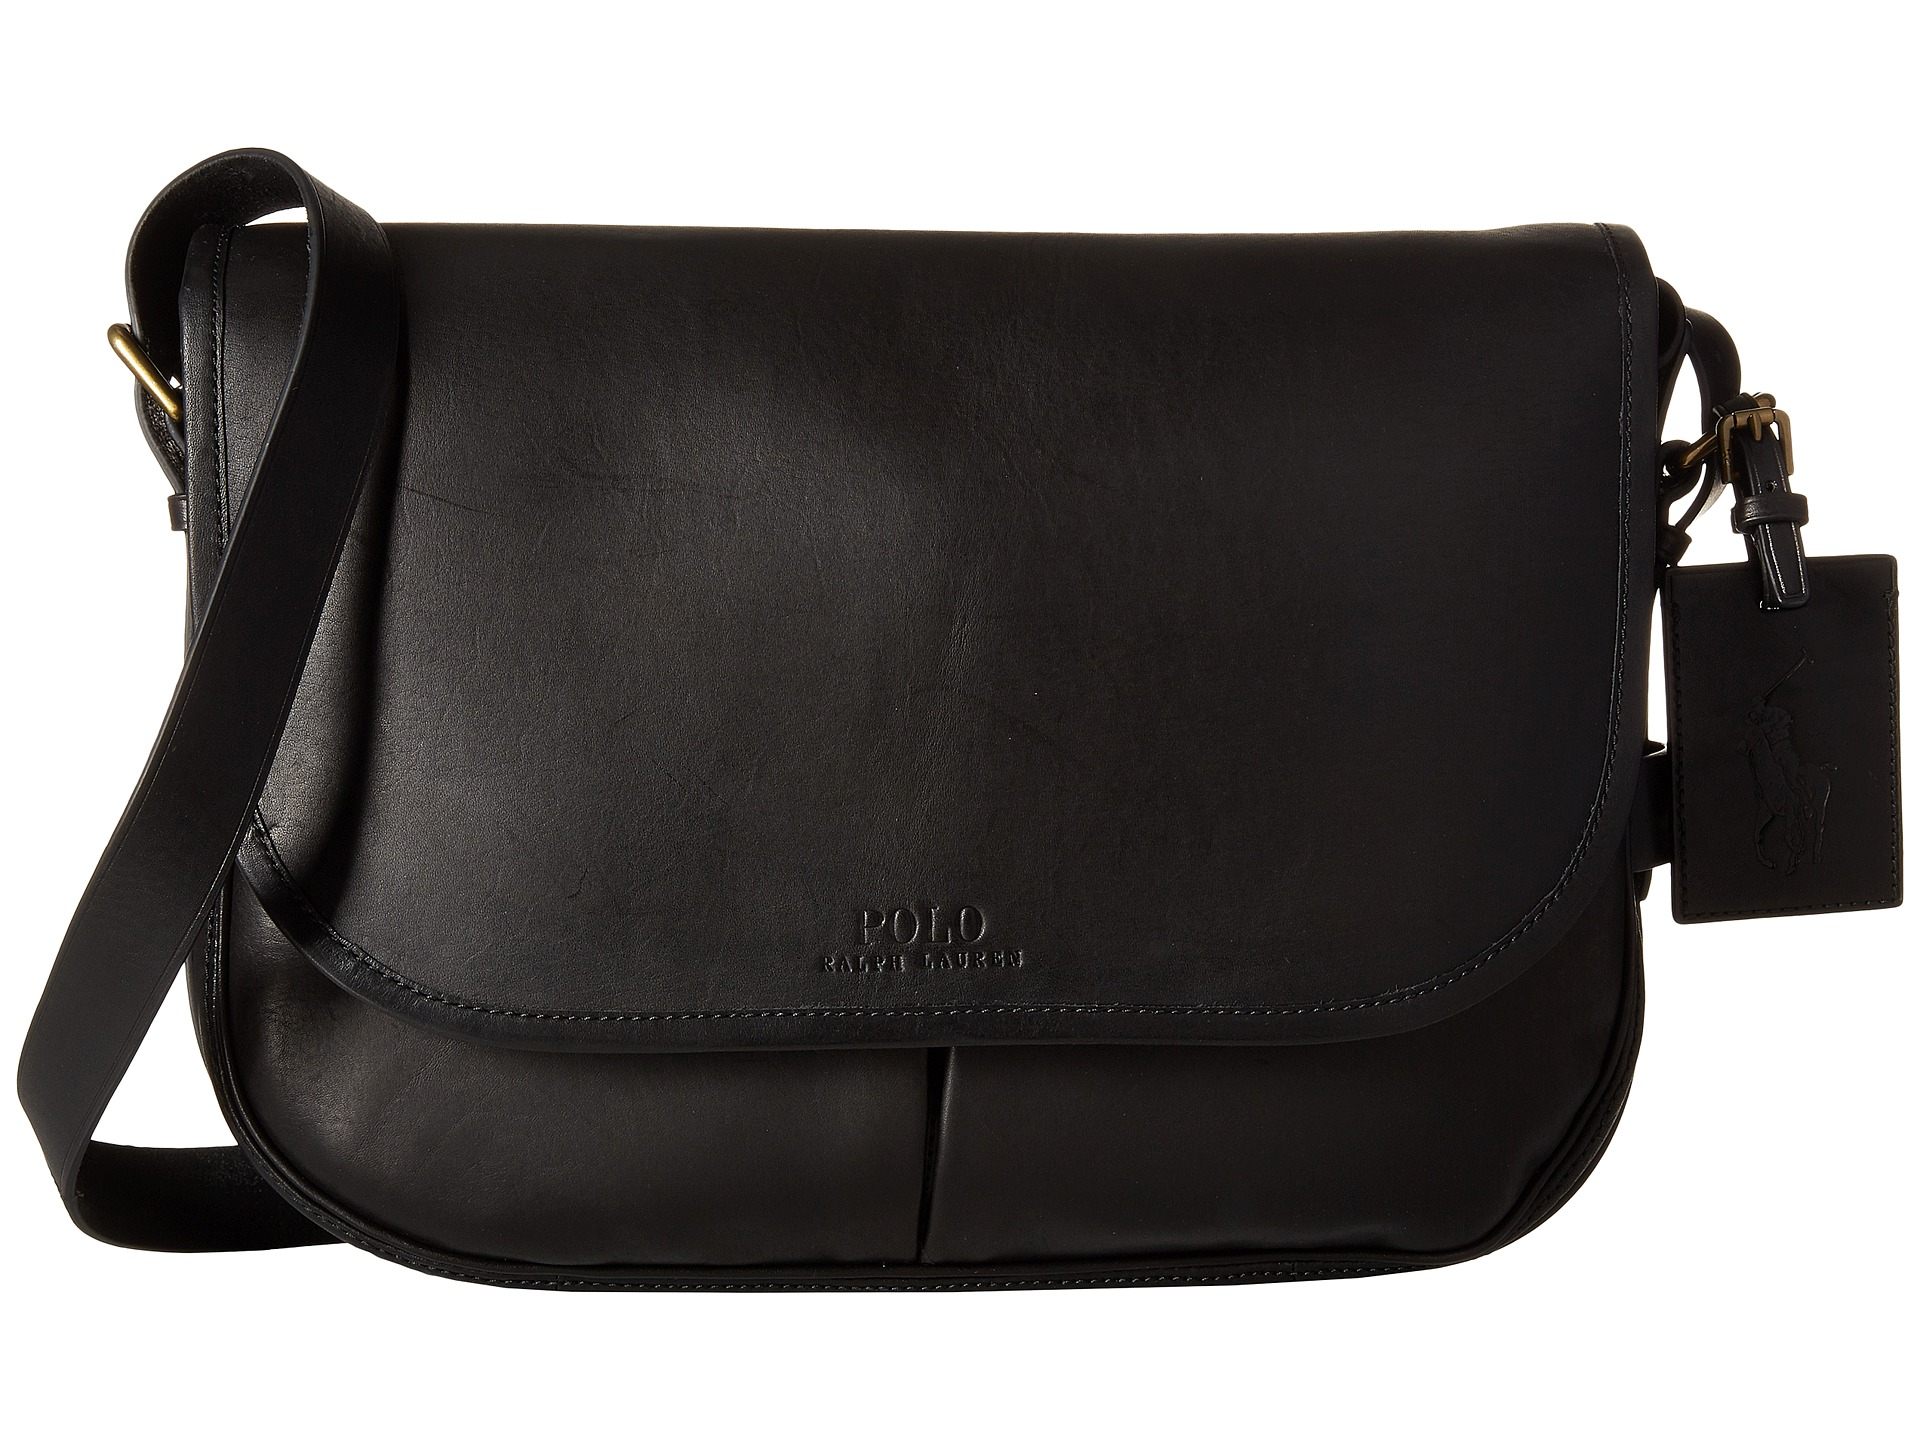 Leather Messenger Bags, Bags | Shipped Free at Zappos